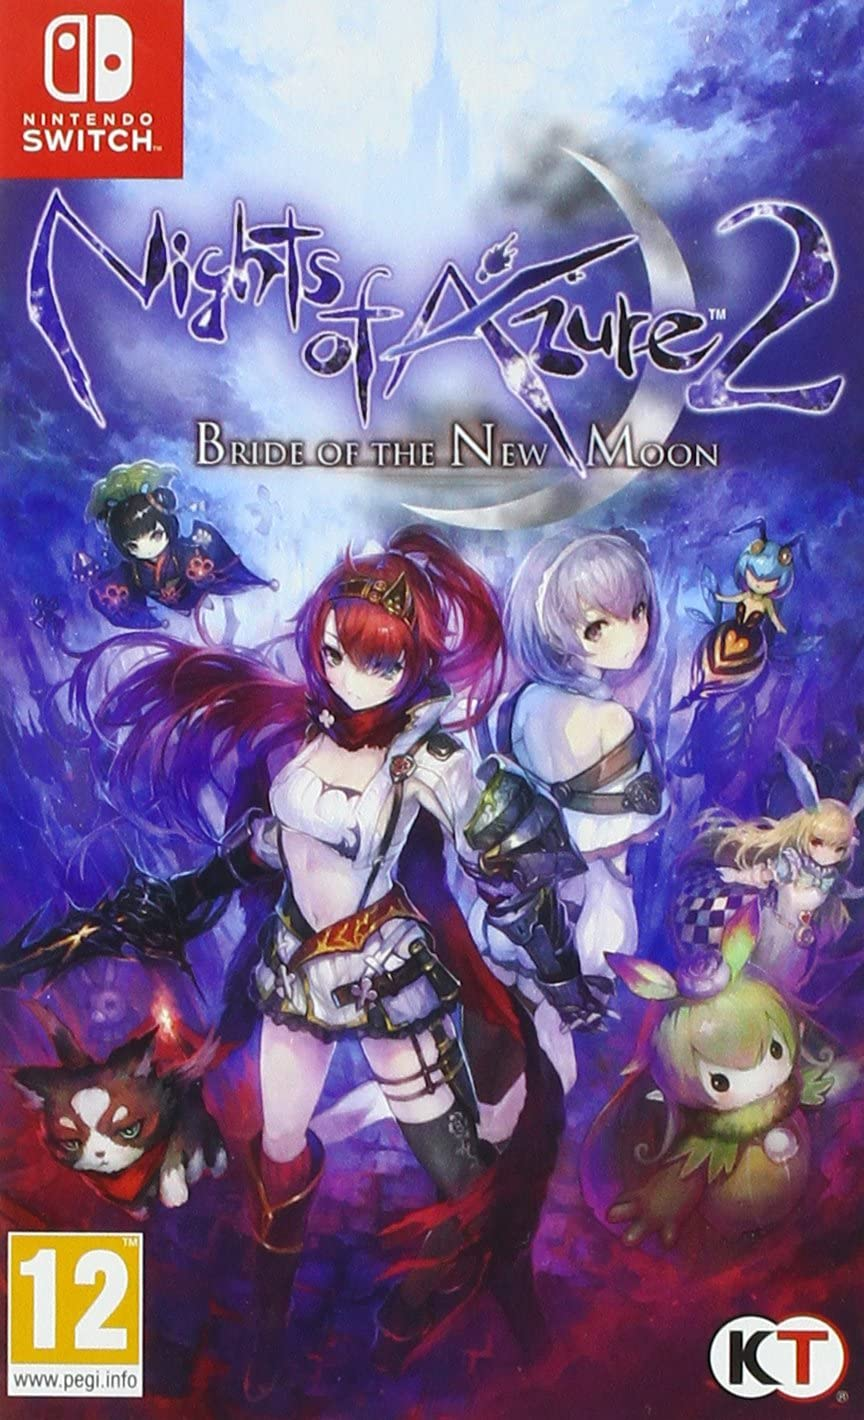 Jaquette de Nights of Azure 2 : Bride of the New Moon